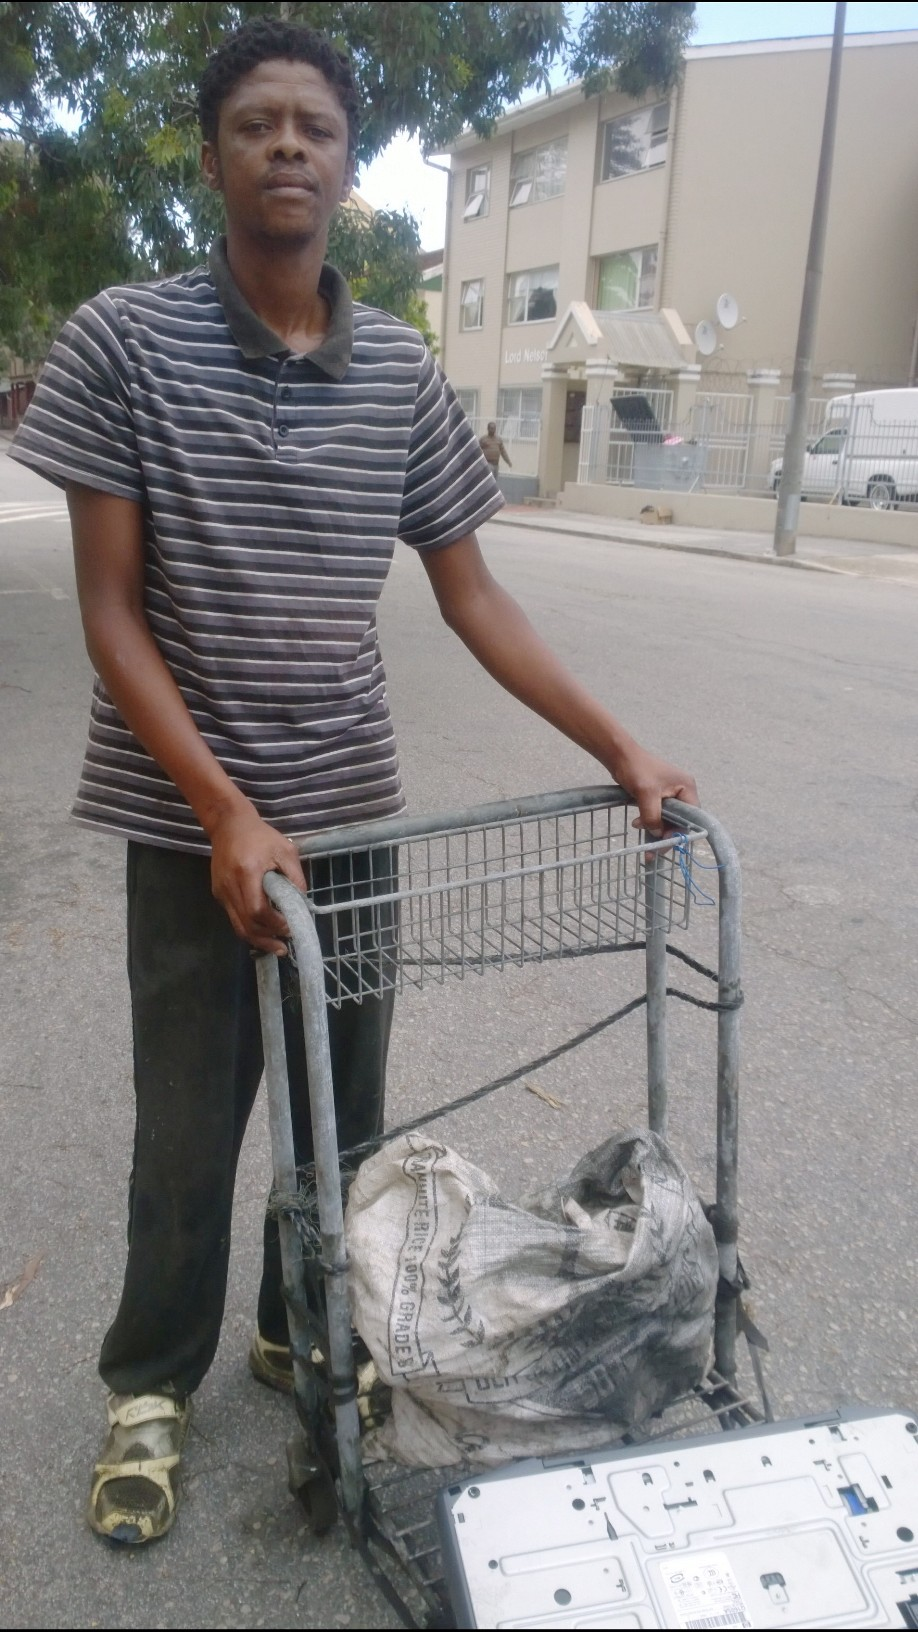 Charlie and his trolley